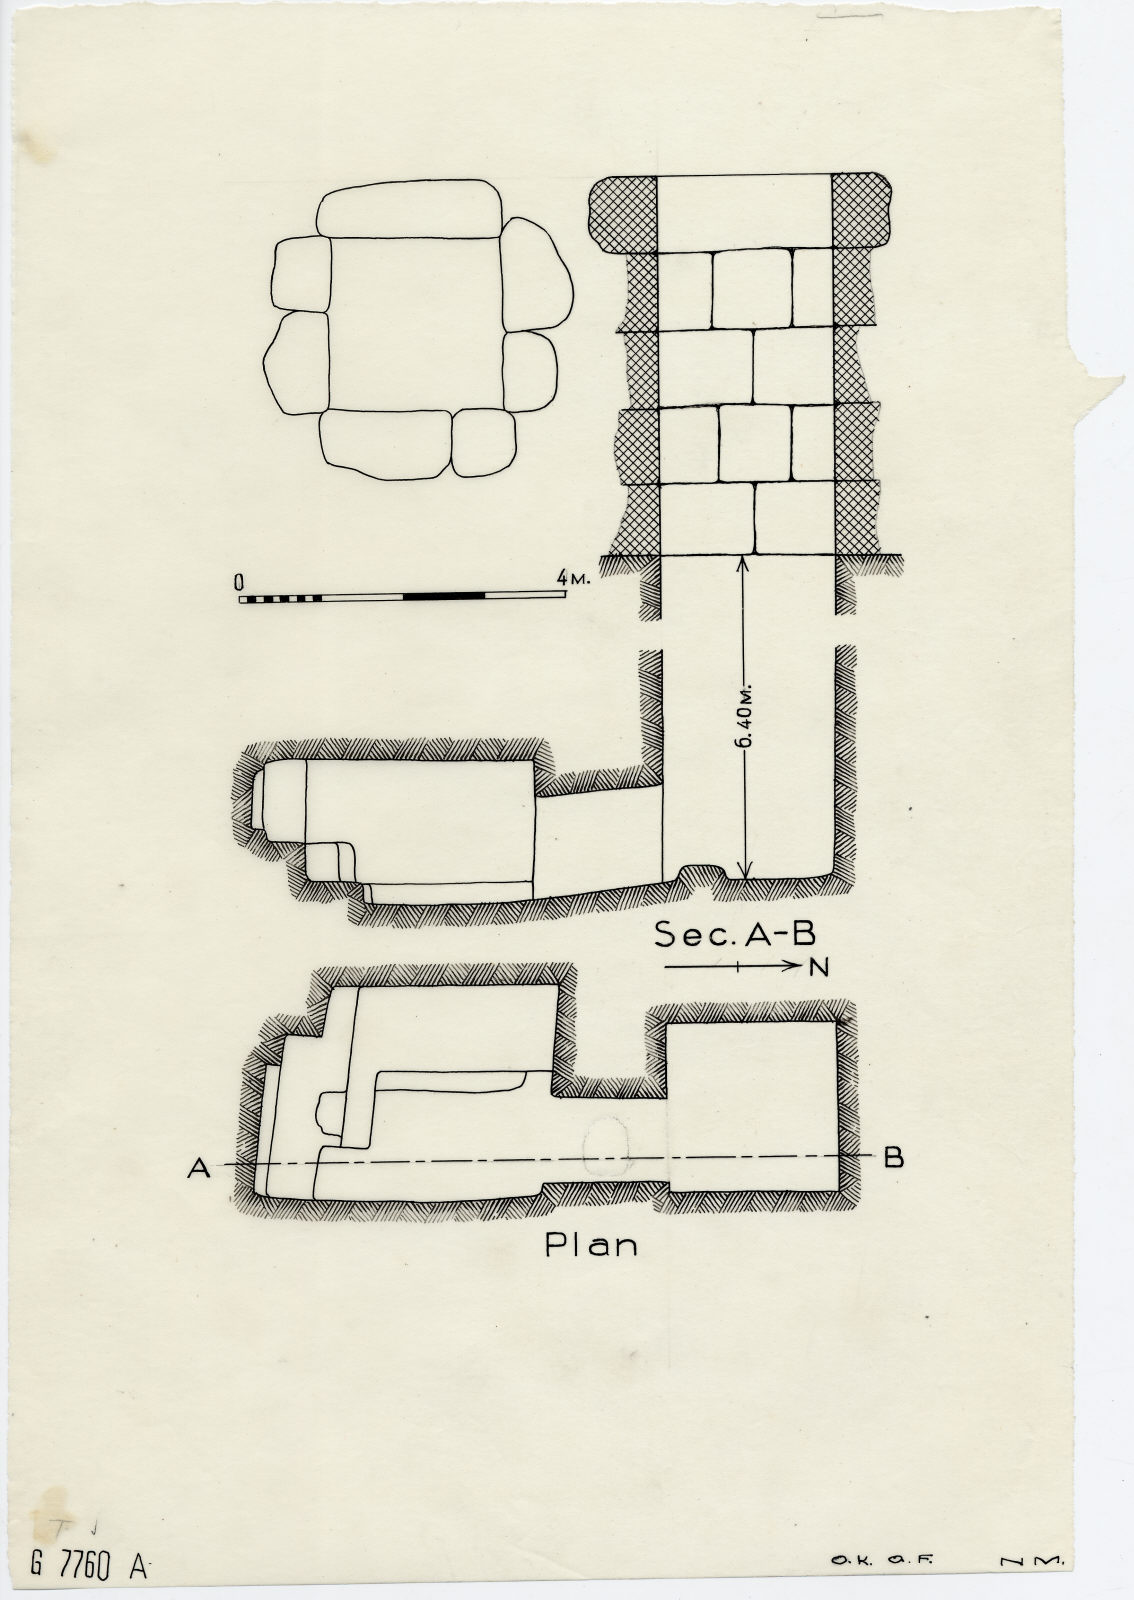 Maps and plans: G 7760, Shaft A